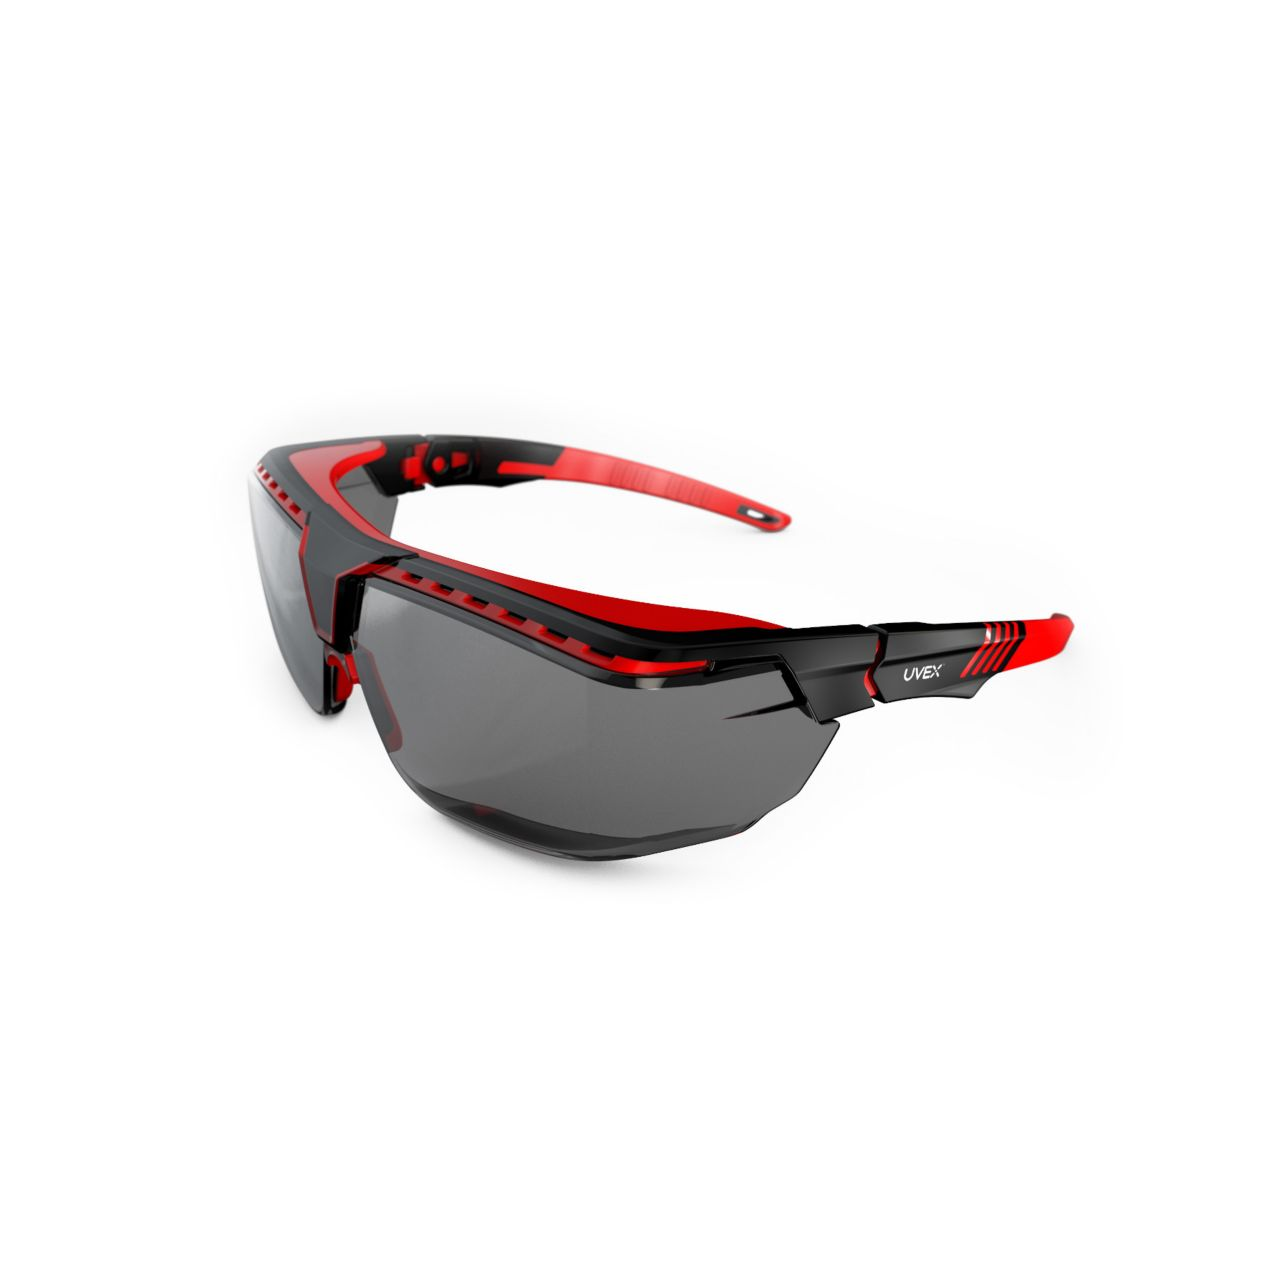 UX_uvex-avatar-otg-safety-glasses_s3852_uvex_avatar_otg_red_black_grey_wb